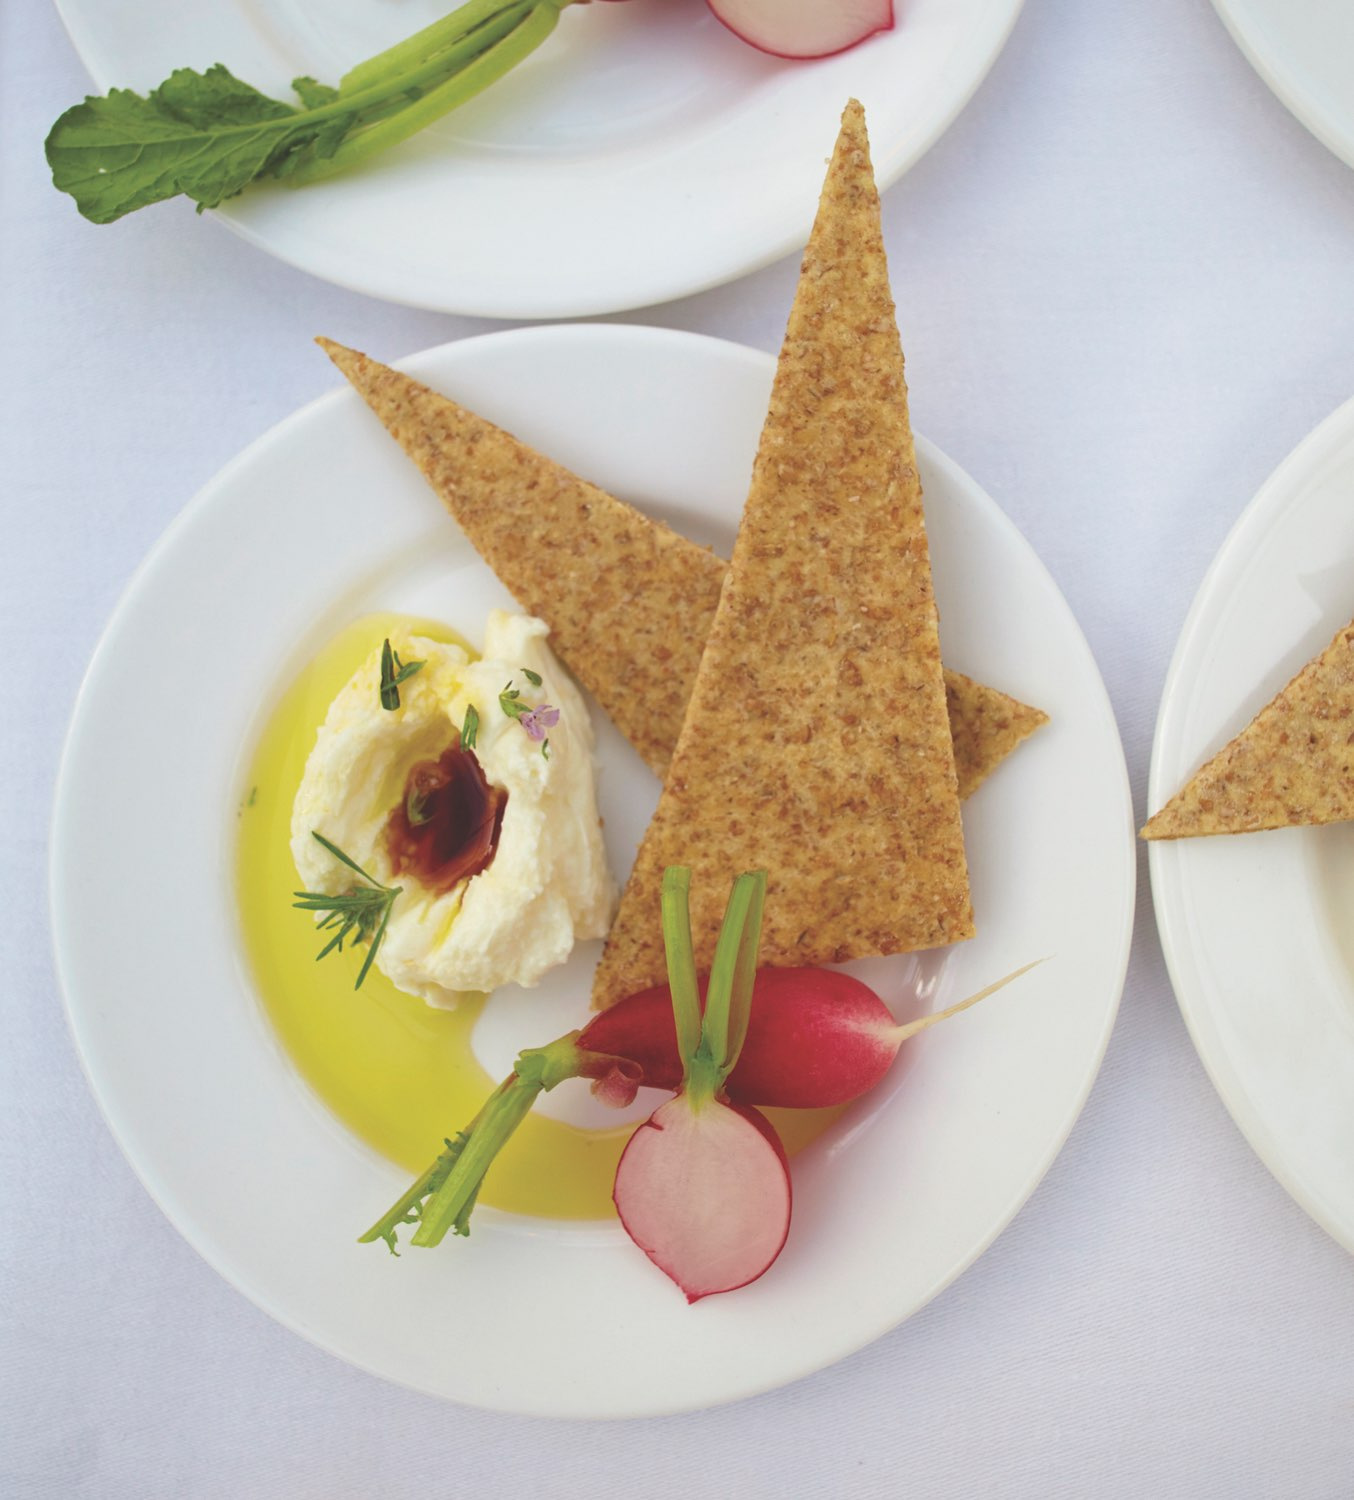 Creative appetizers displayed at Ballymaloe Cookery School